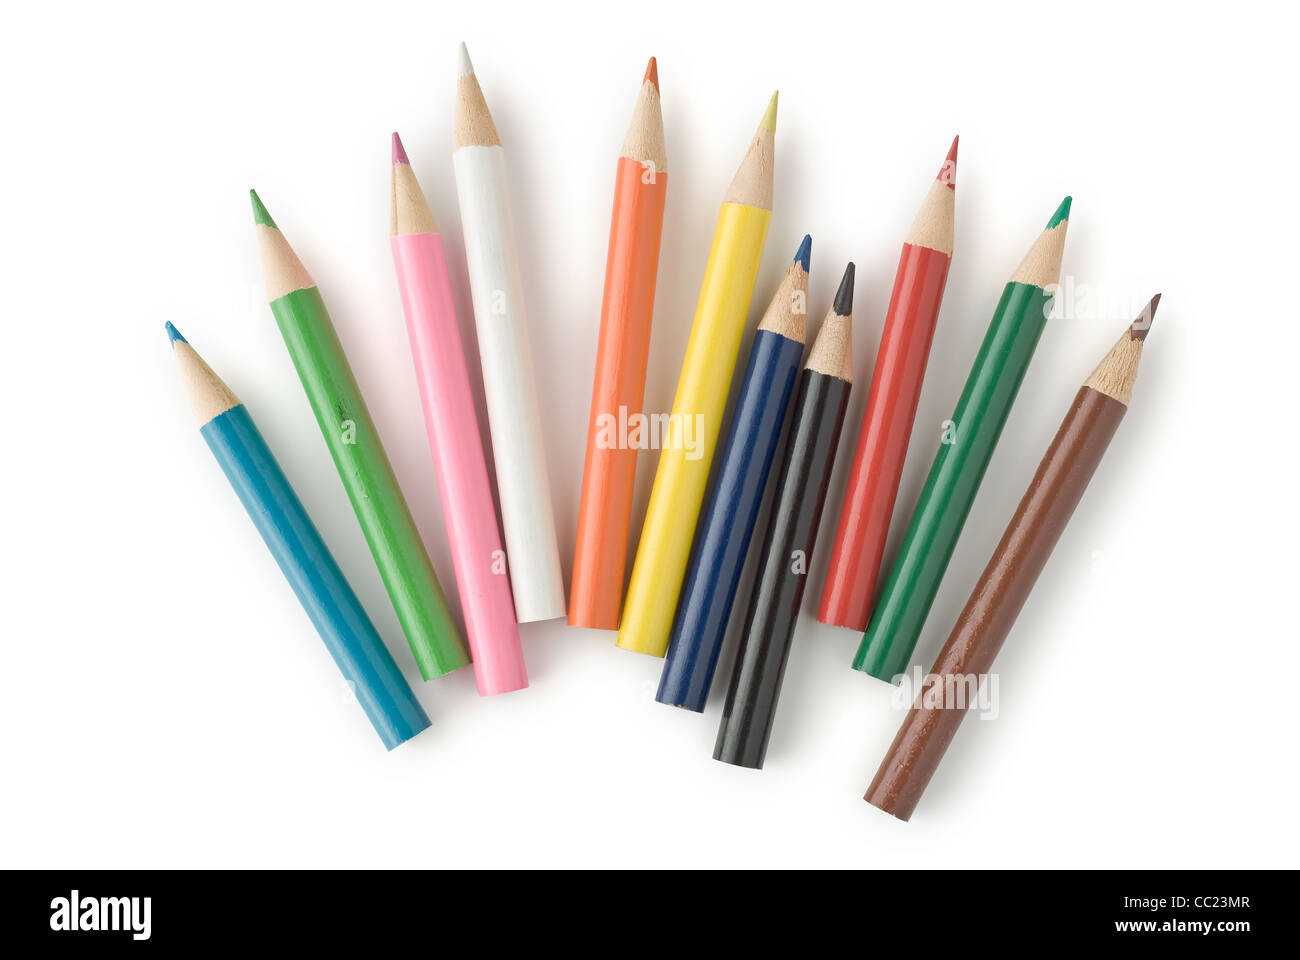 Colored Pencils for School or Professional Use - Stock Image